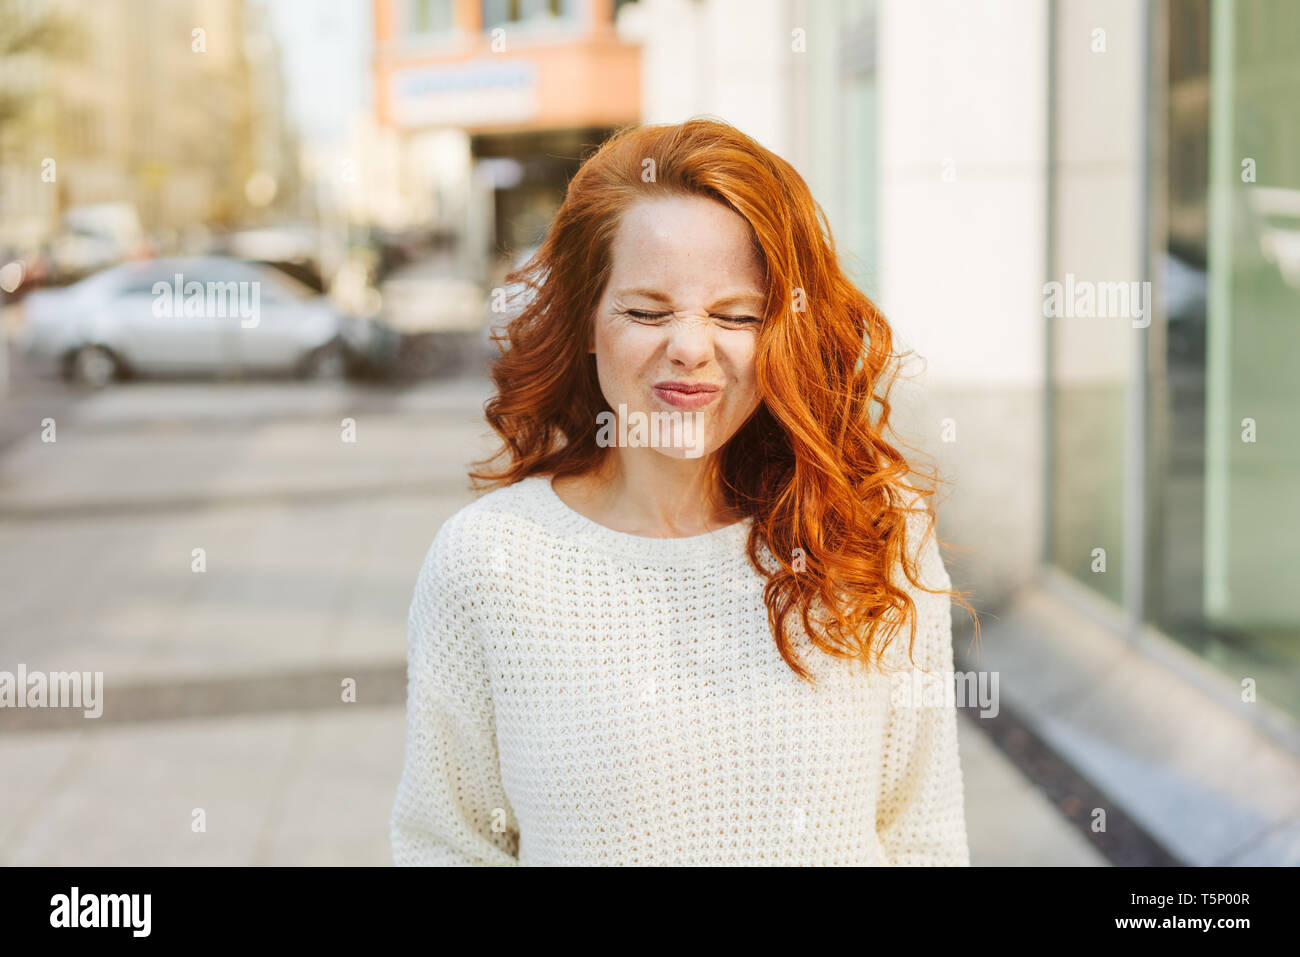 Pretty young woman screwing up her face grimacing in distaste as she stands on a pavement on a city street - Stock Image